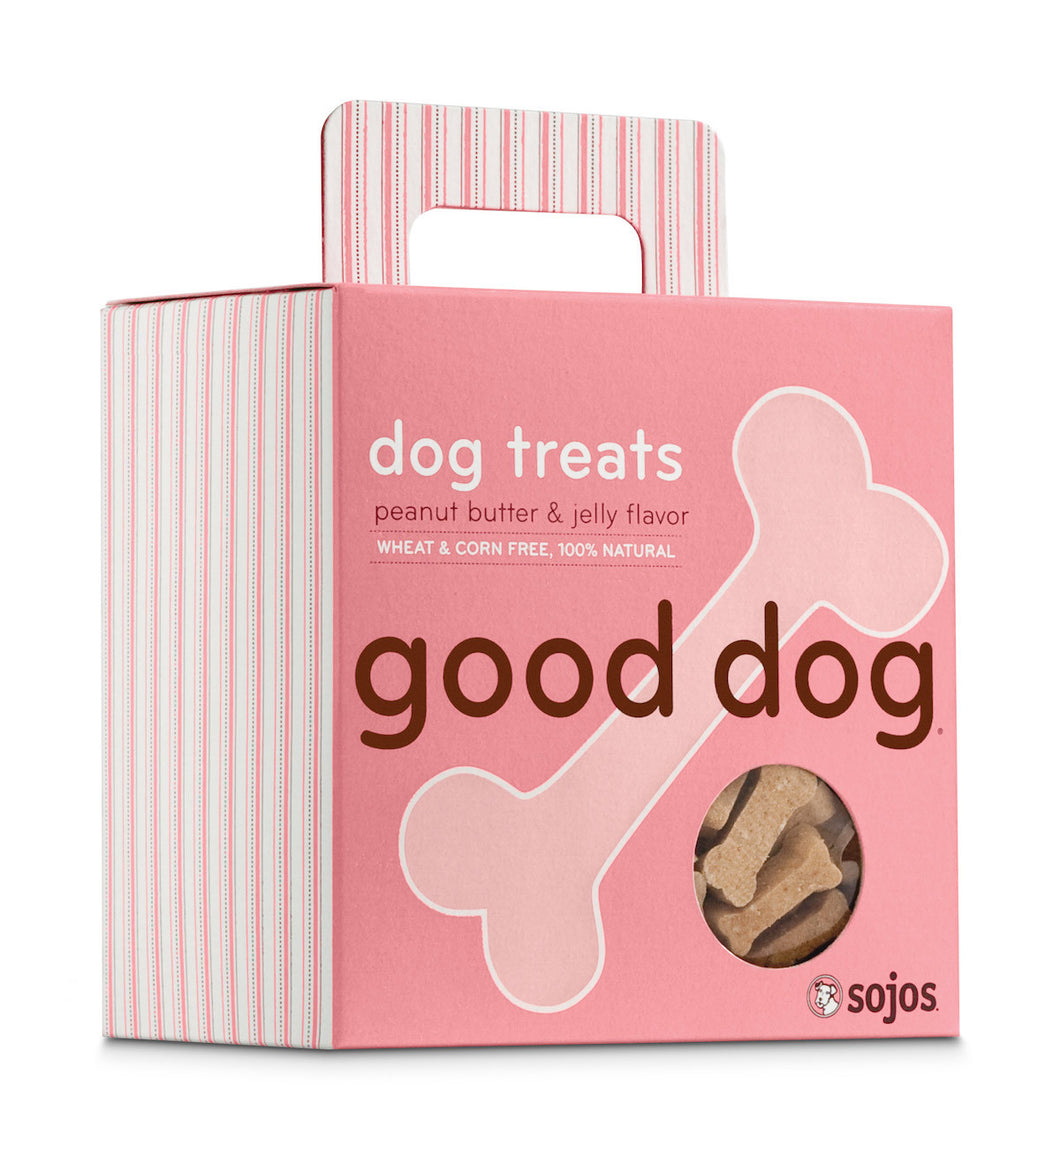 Sojos Good Dog Peanut Butter and Jelly Dog Treats